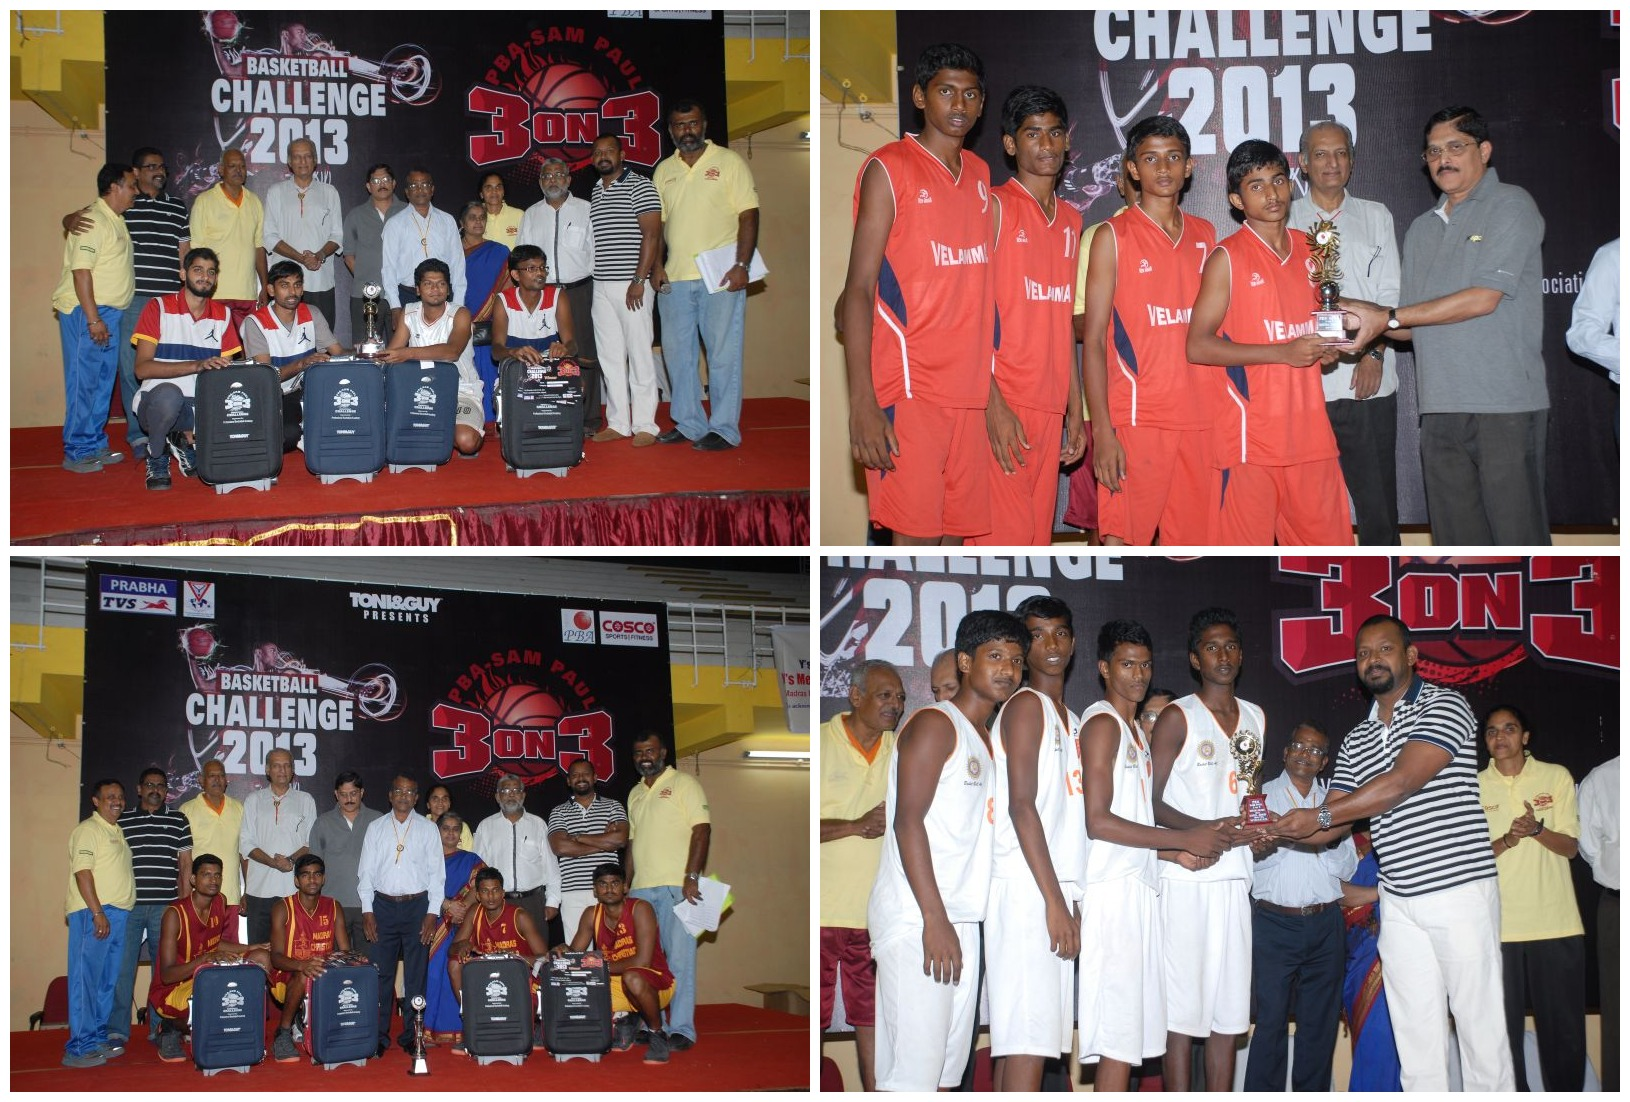 Winning teams (clockwise from top left): The TCS team, winners in the Corporate category; Velammal team, winner in the Junior Boys category receiving trophy from C. Siva Kumar, Managing Partner, Prabha TVS; MCC team, winner of College level; MCTM, Winner of Senior Boys (Schools) receiving trophy from Dr Sam Paul, Managing Trustee, Sam Paul trust.